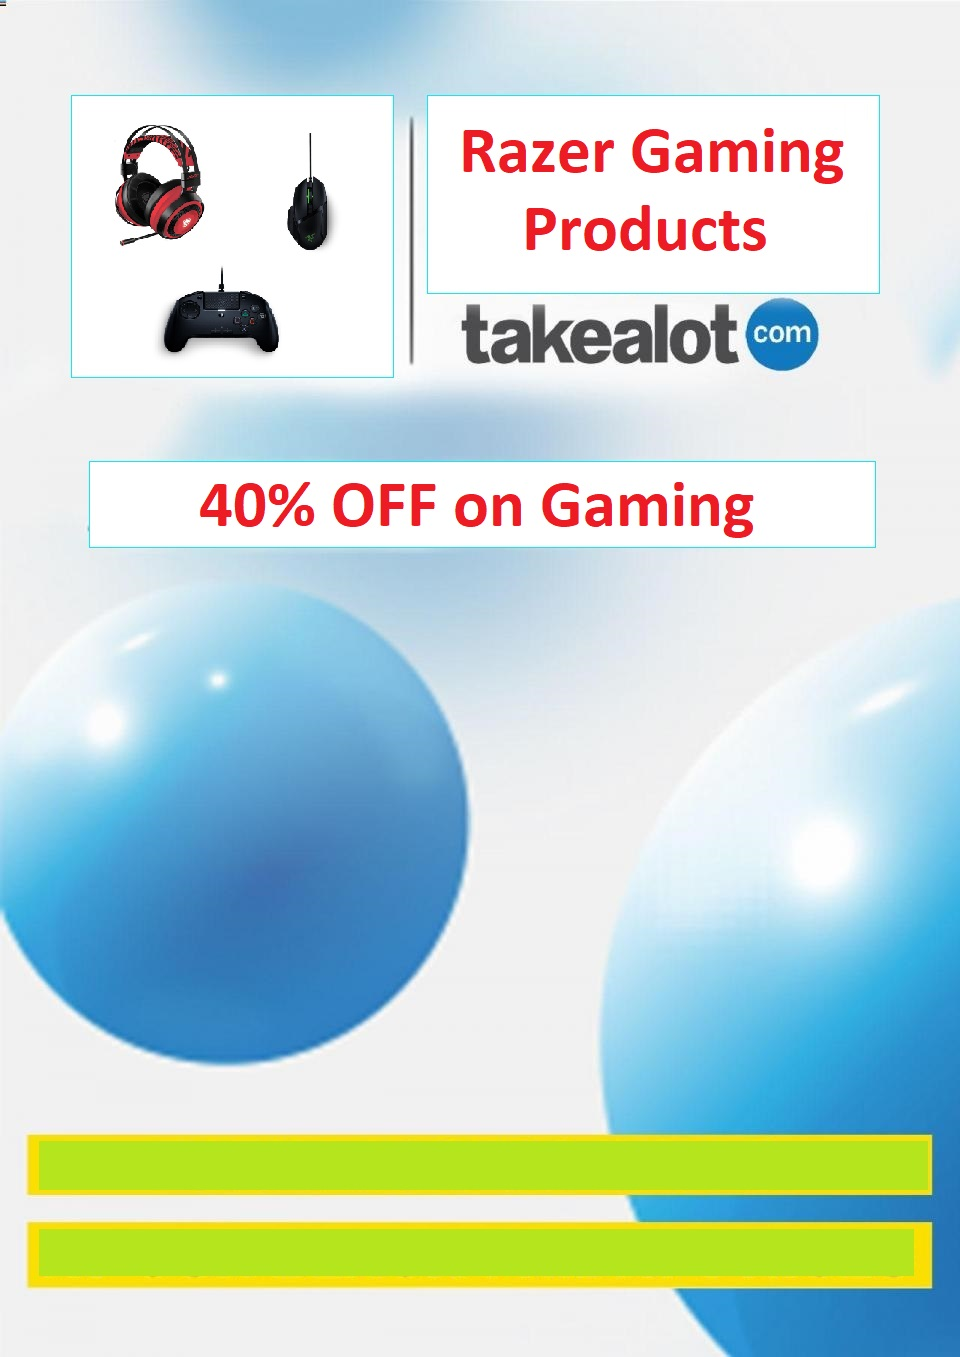 takealot specials razer gaming 22 may 2020